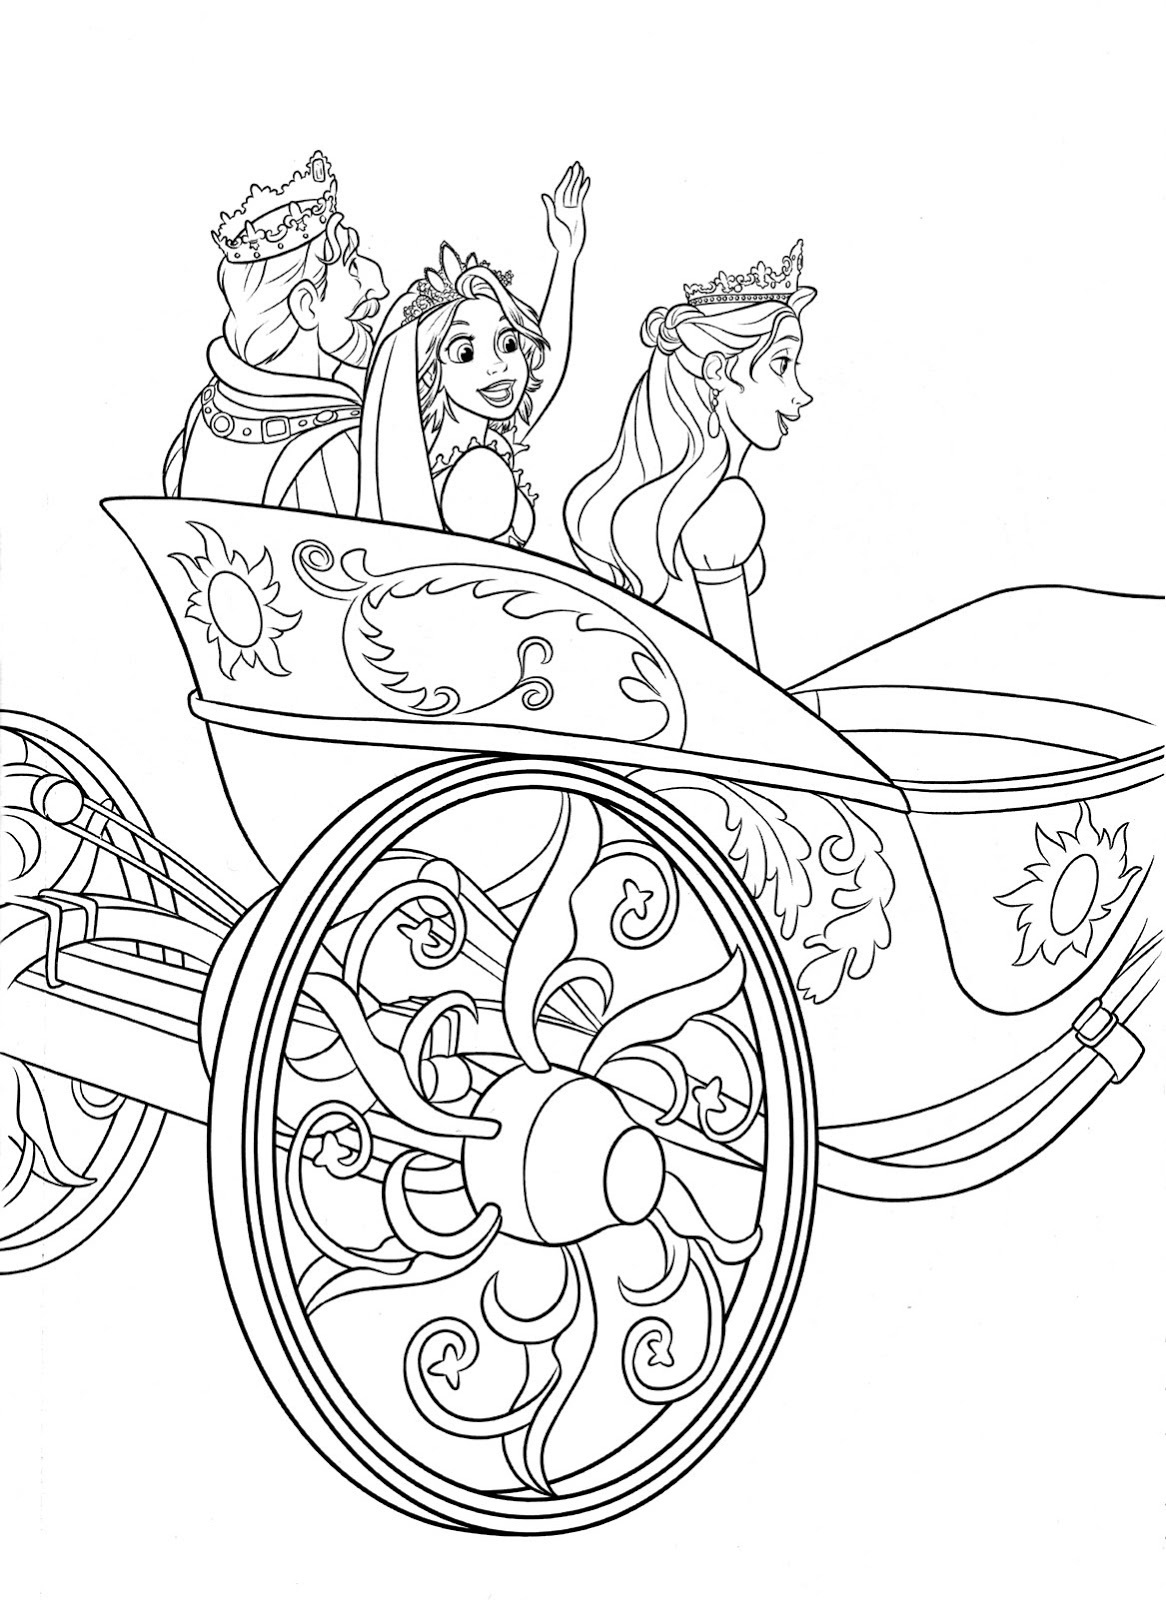 printable rapunzel coloring pages - tangled coloring pages printable activity shelter